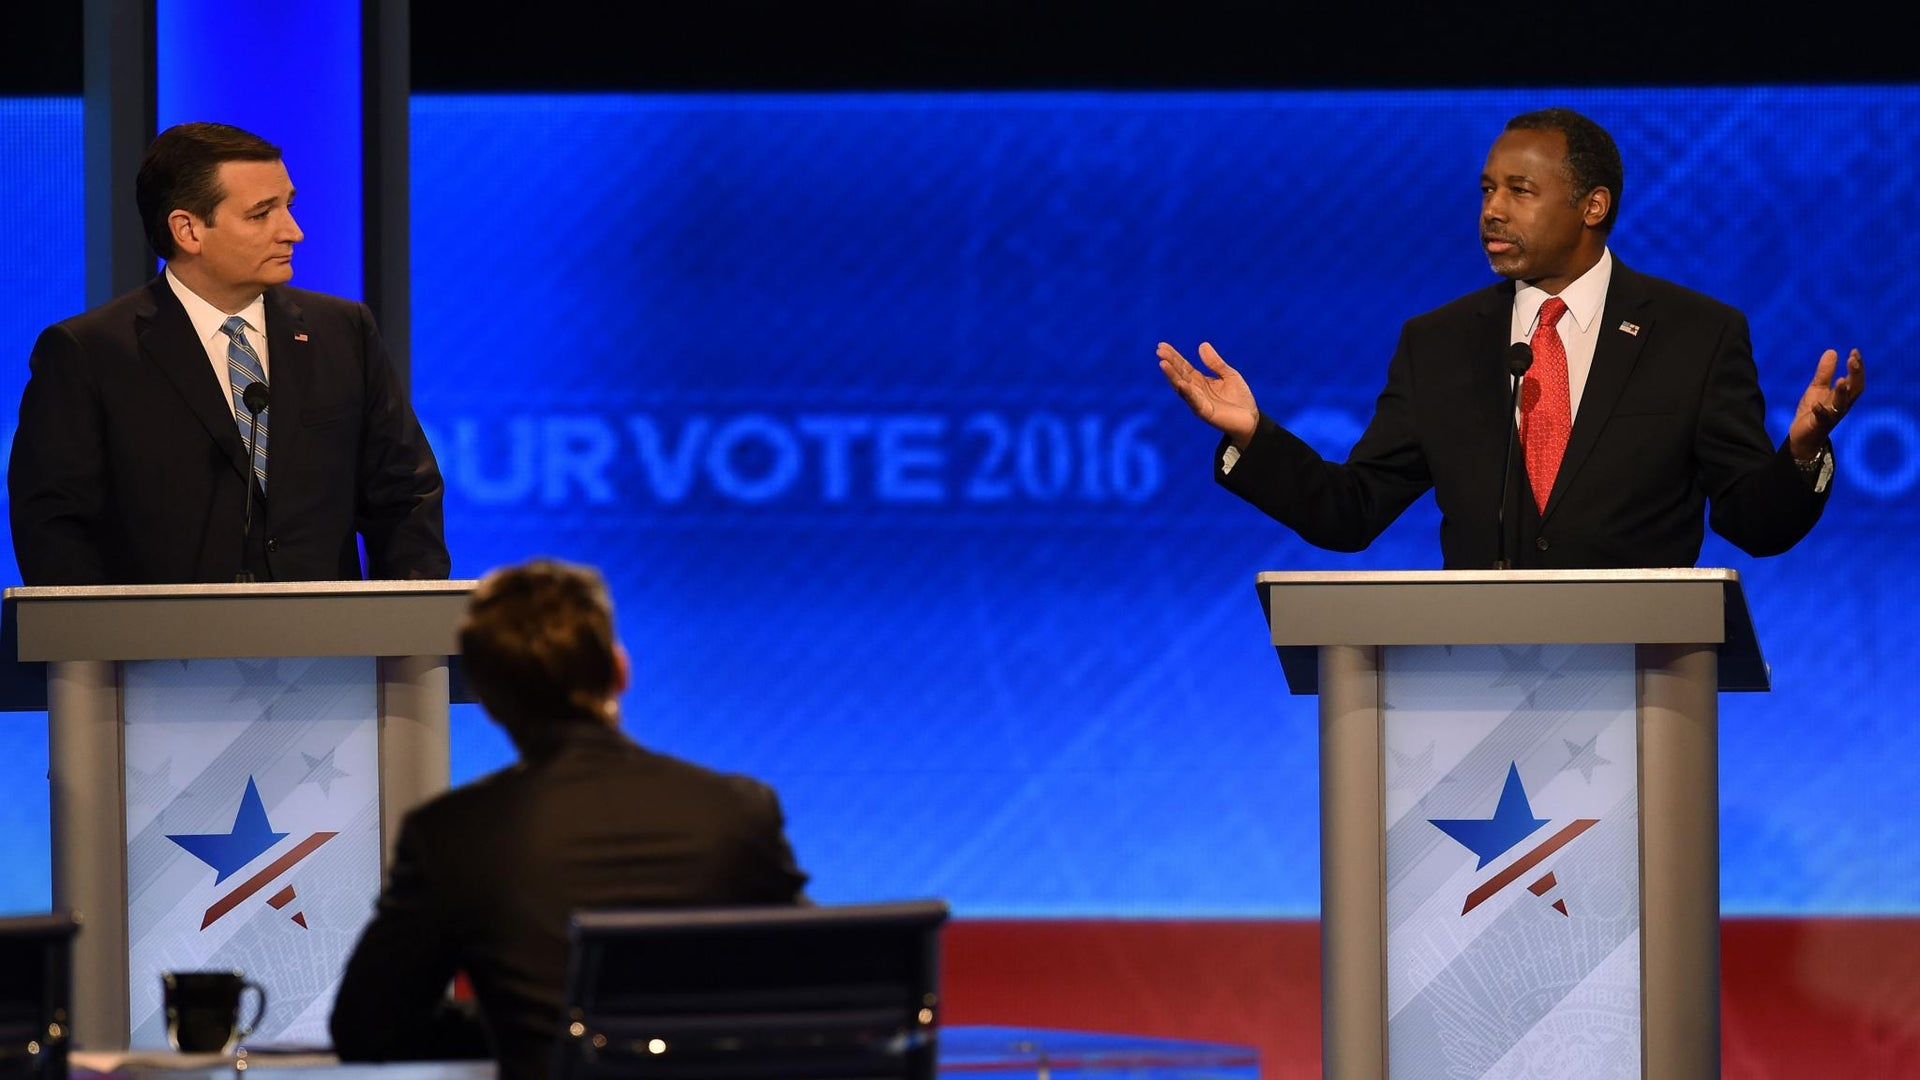 No Color, Some Flavor in the ABC News Run-Up to a Pivotal Primary